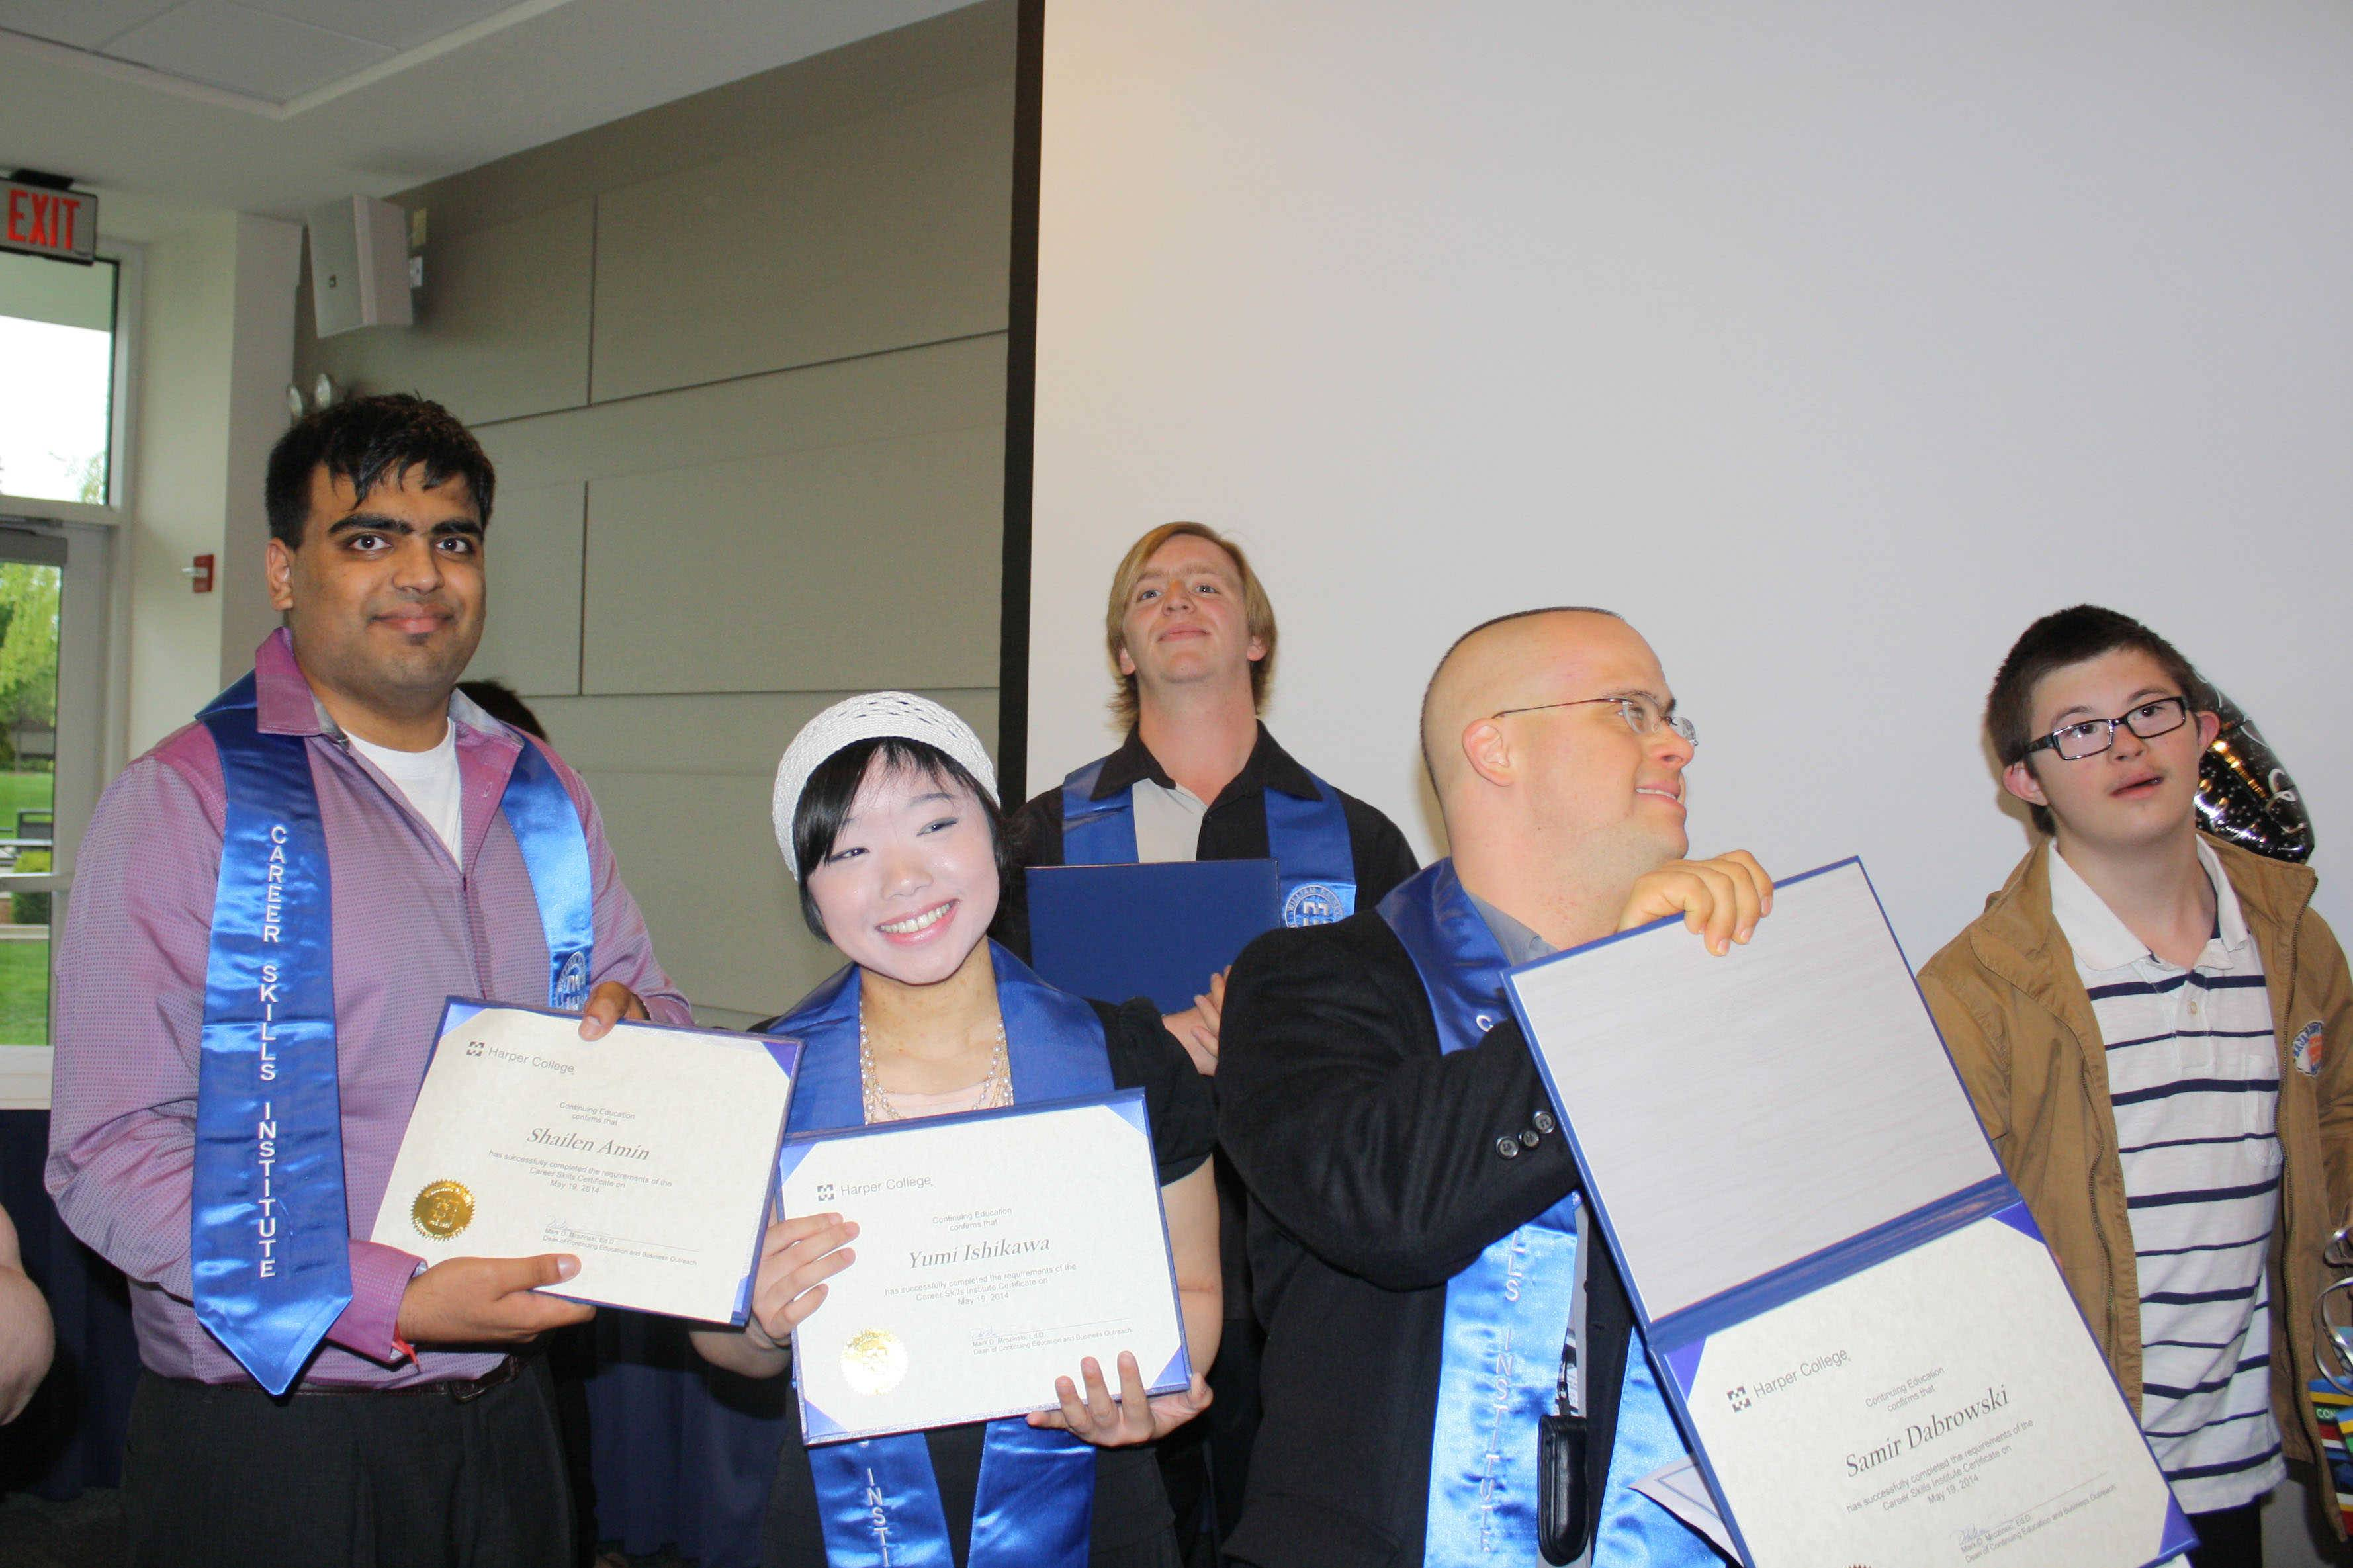 Graduates display their certificates, including Shailen Amin of Schaumburg, Yumi Ishikawa of Northbrook, Adam Pierce of Arlington Heights, and Samir Dabrowski of Mount Prospect.